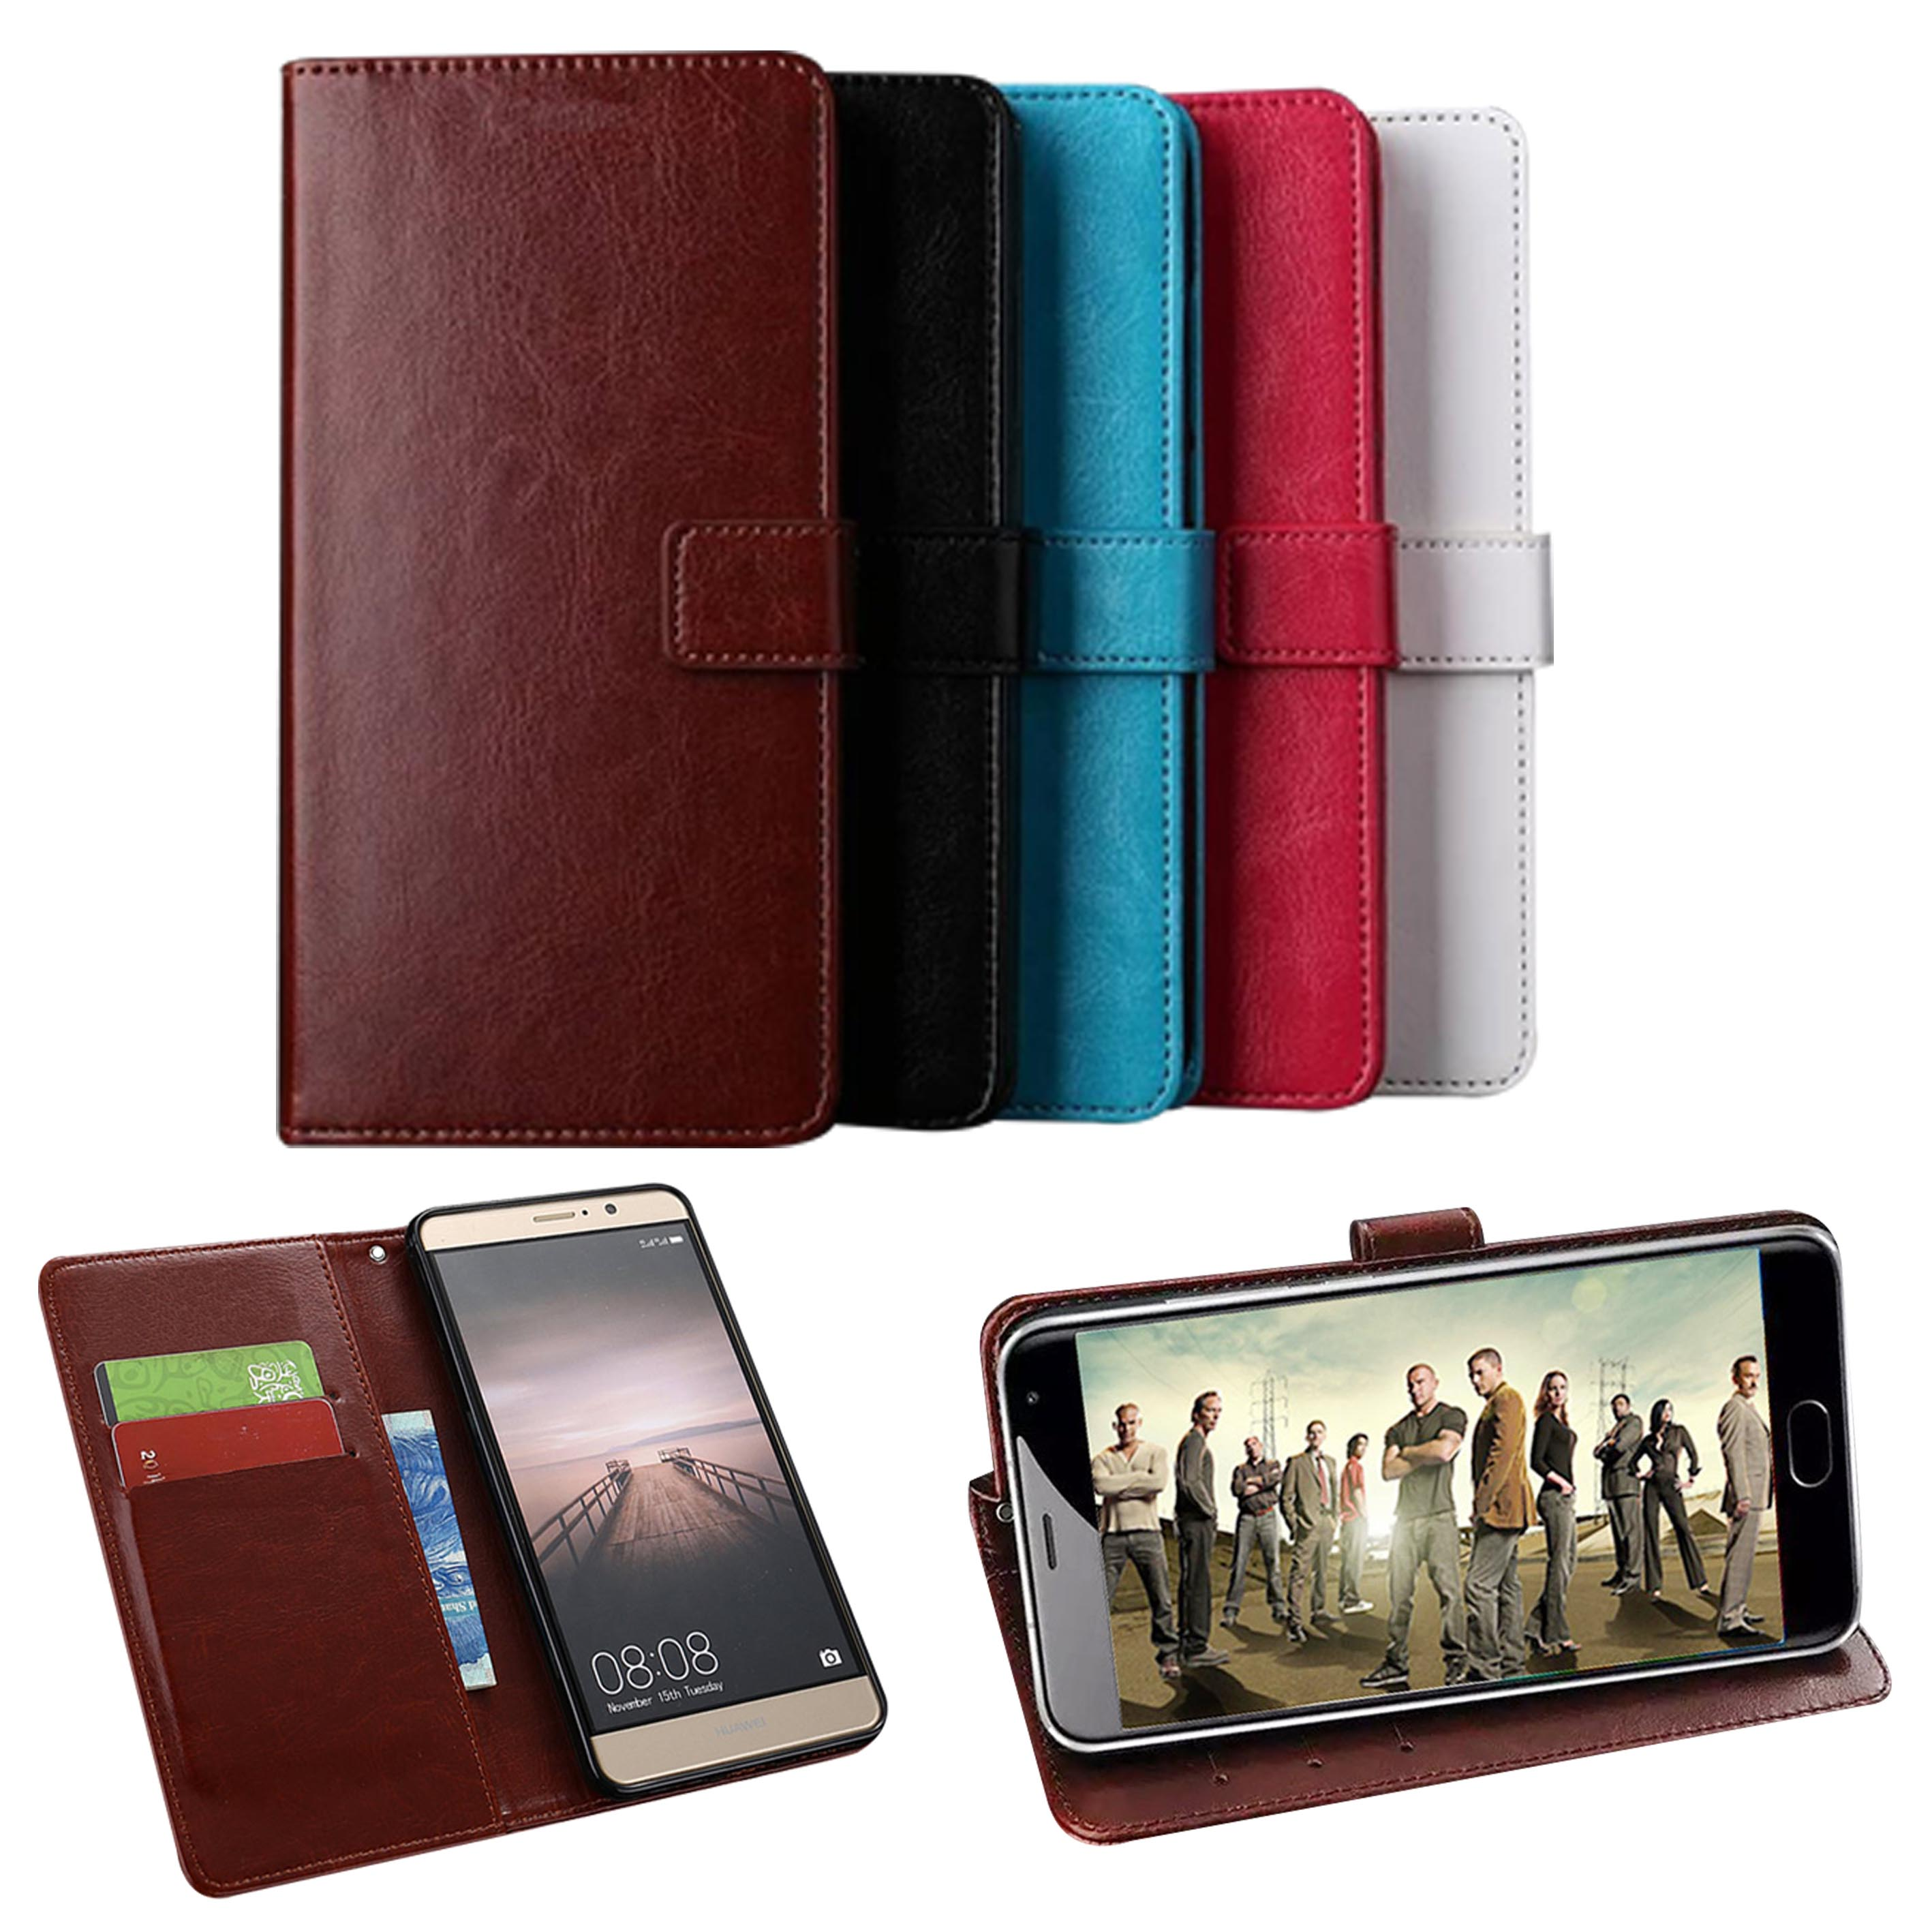 Wallet Genuine Leather Case For Asus Zenfone Go TV ZB551KL Coque Cover Luxury Flip Kickstand Case For Asus Zenfone Go TV Cases